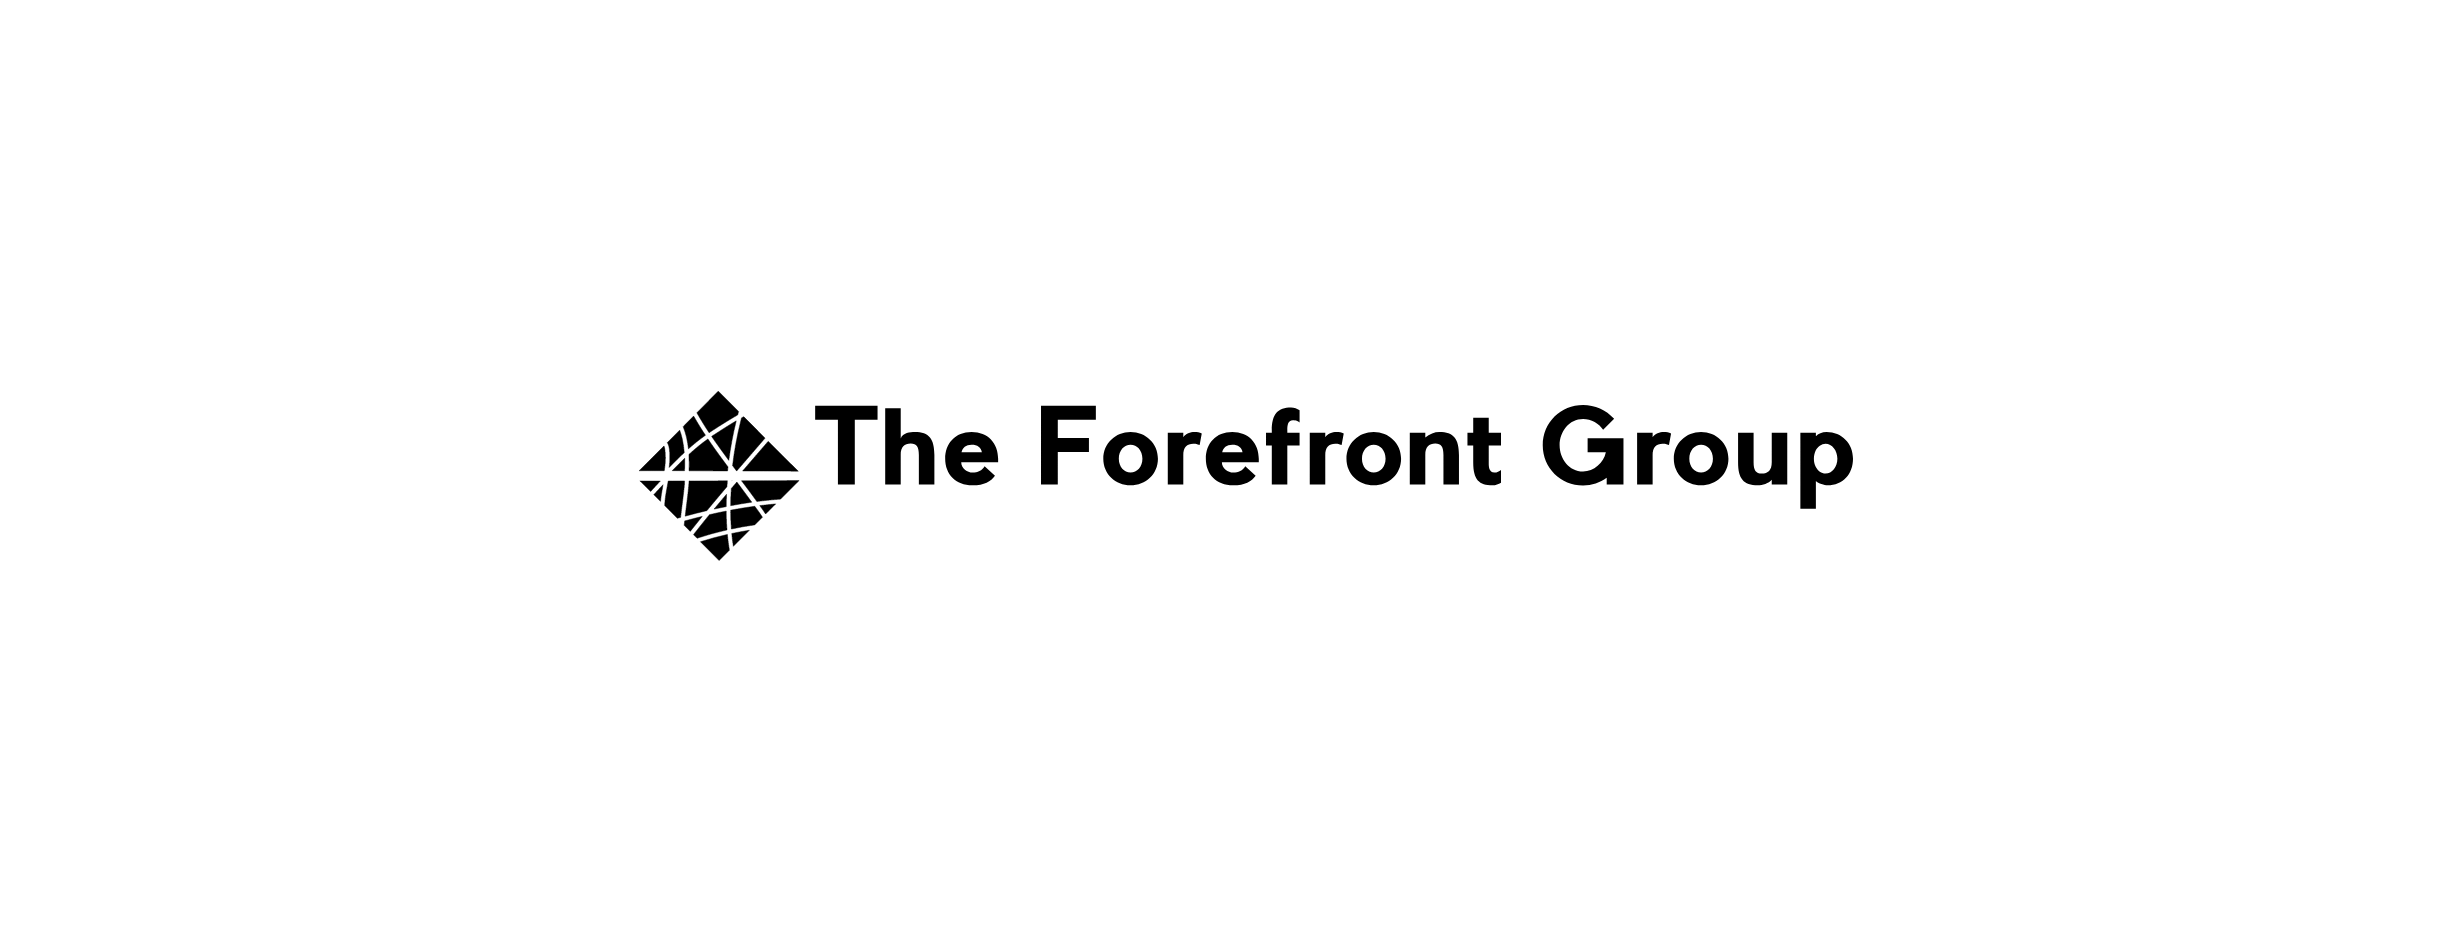 The Forefront Group Logo